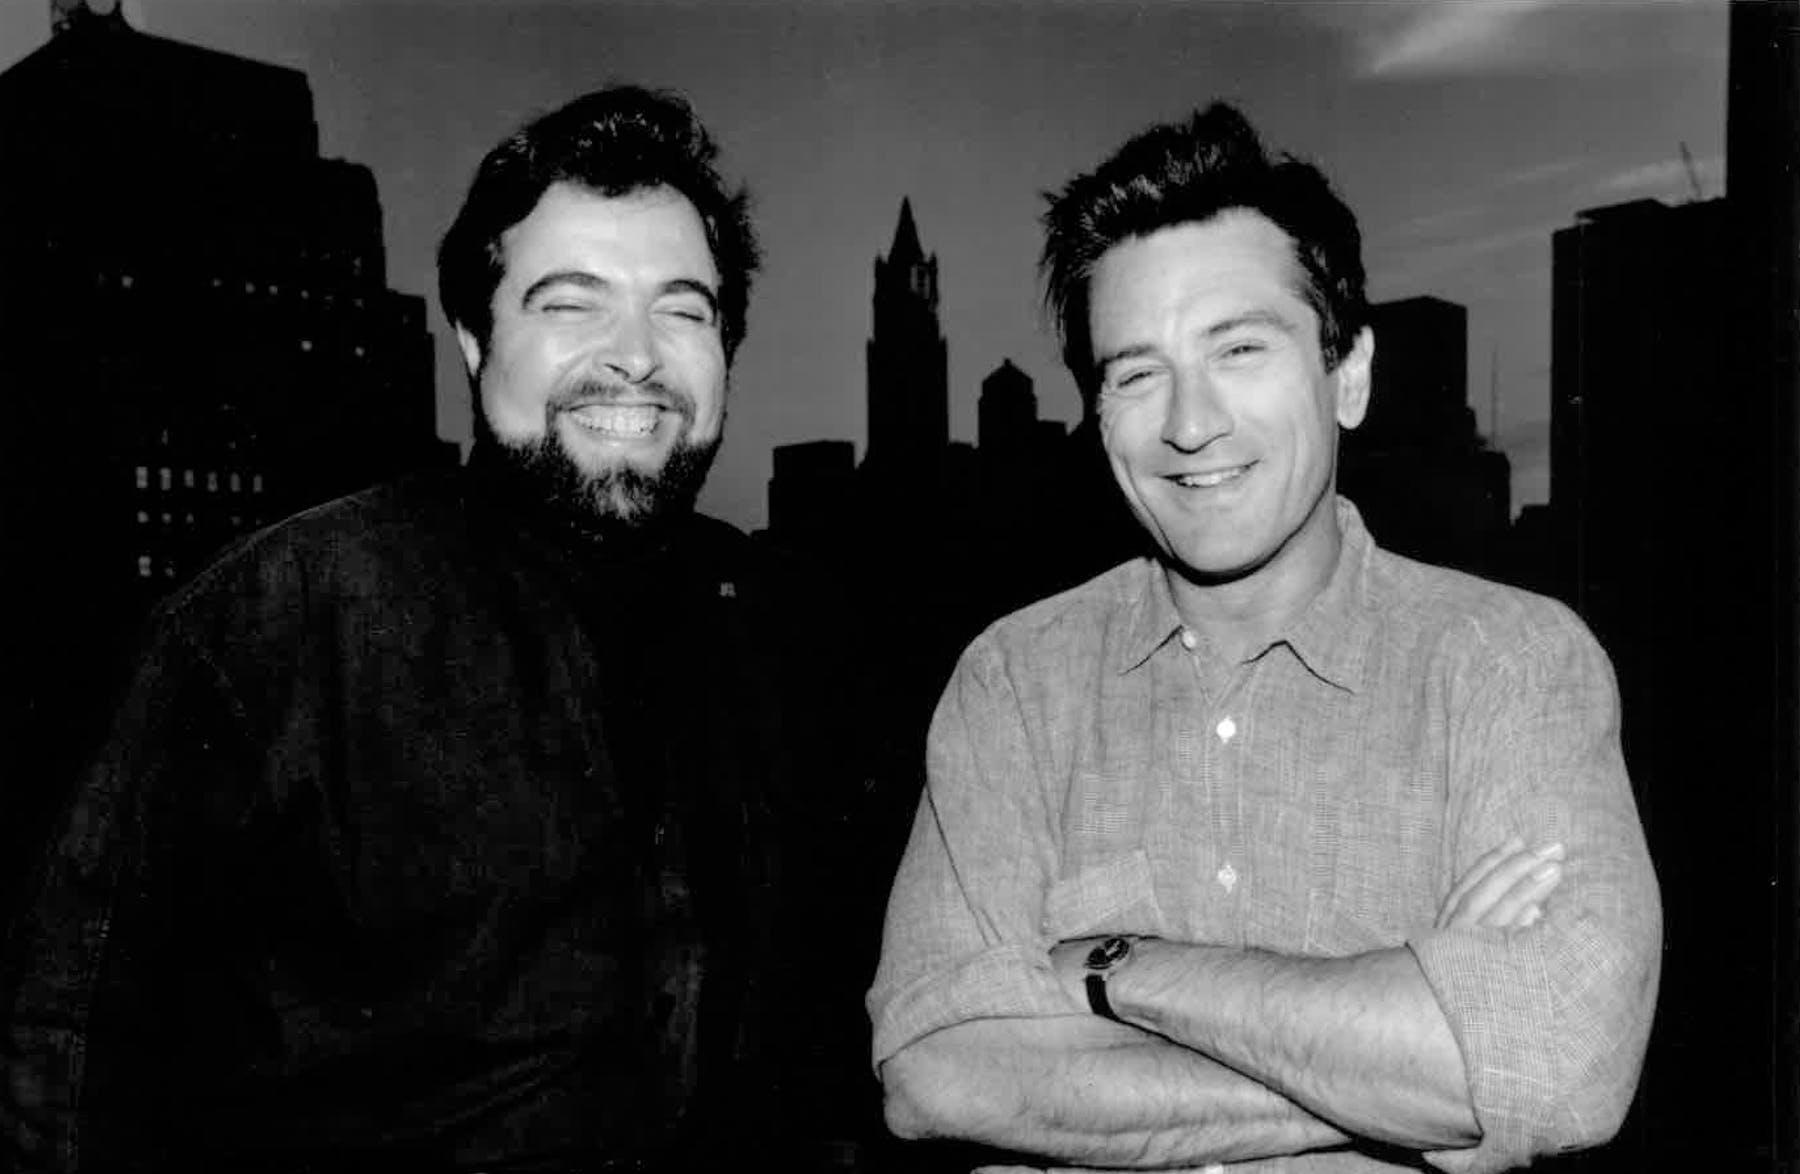 Drew Nieporent, Robert De Niro are posing for a picture